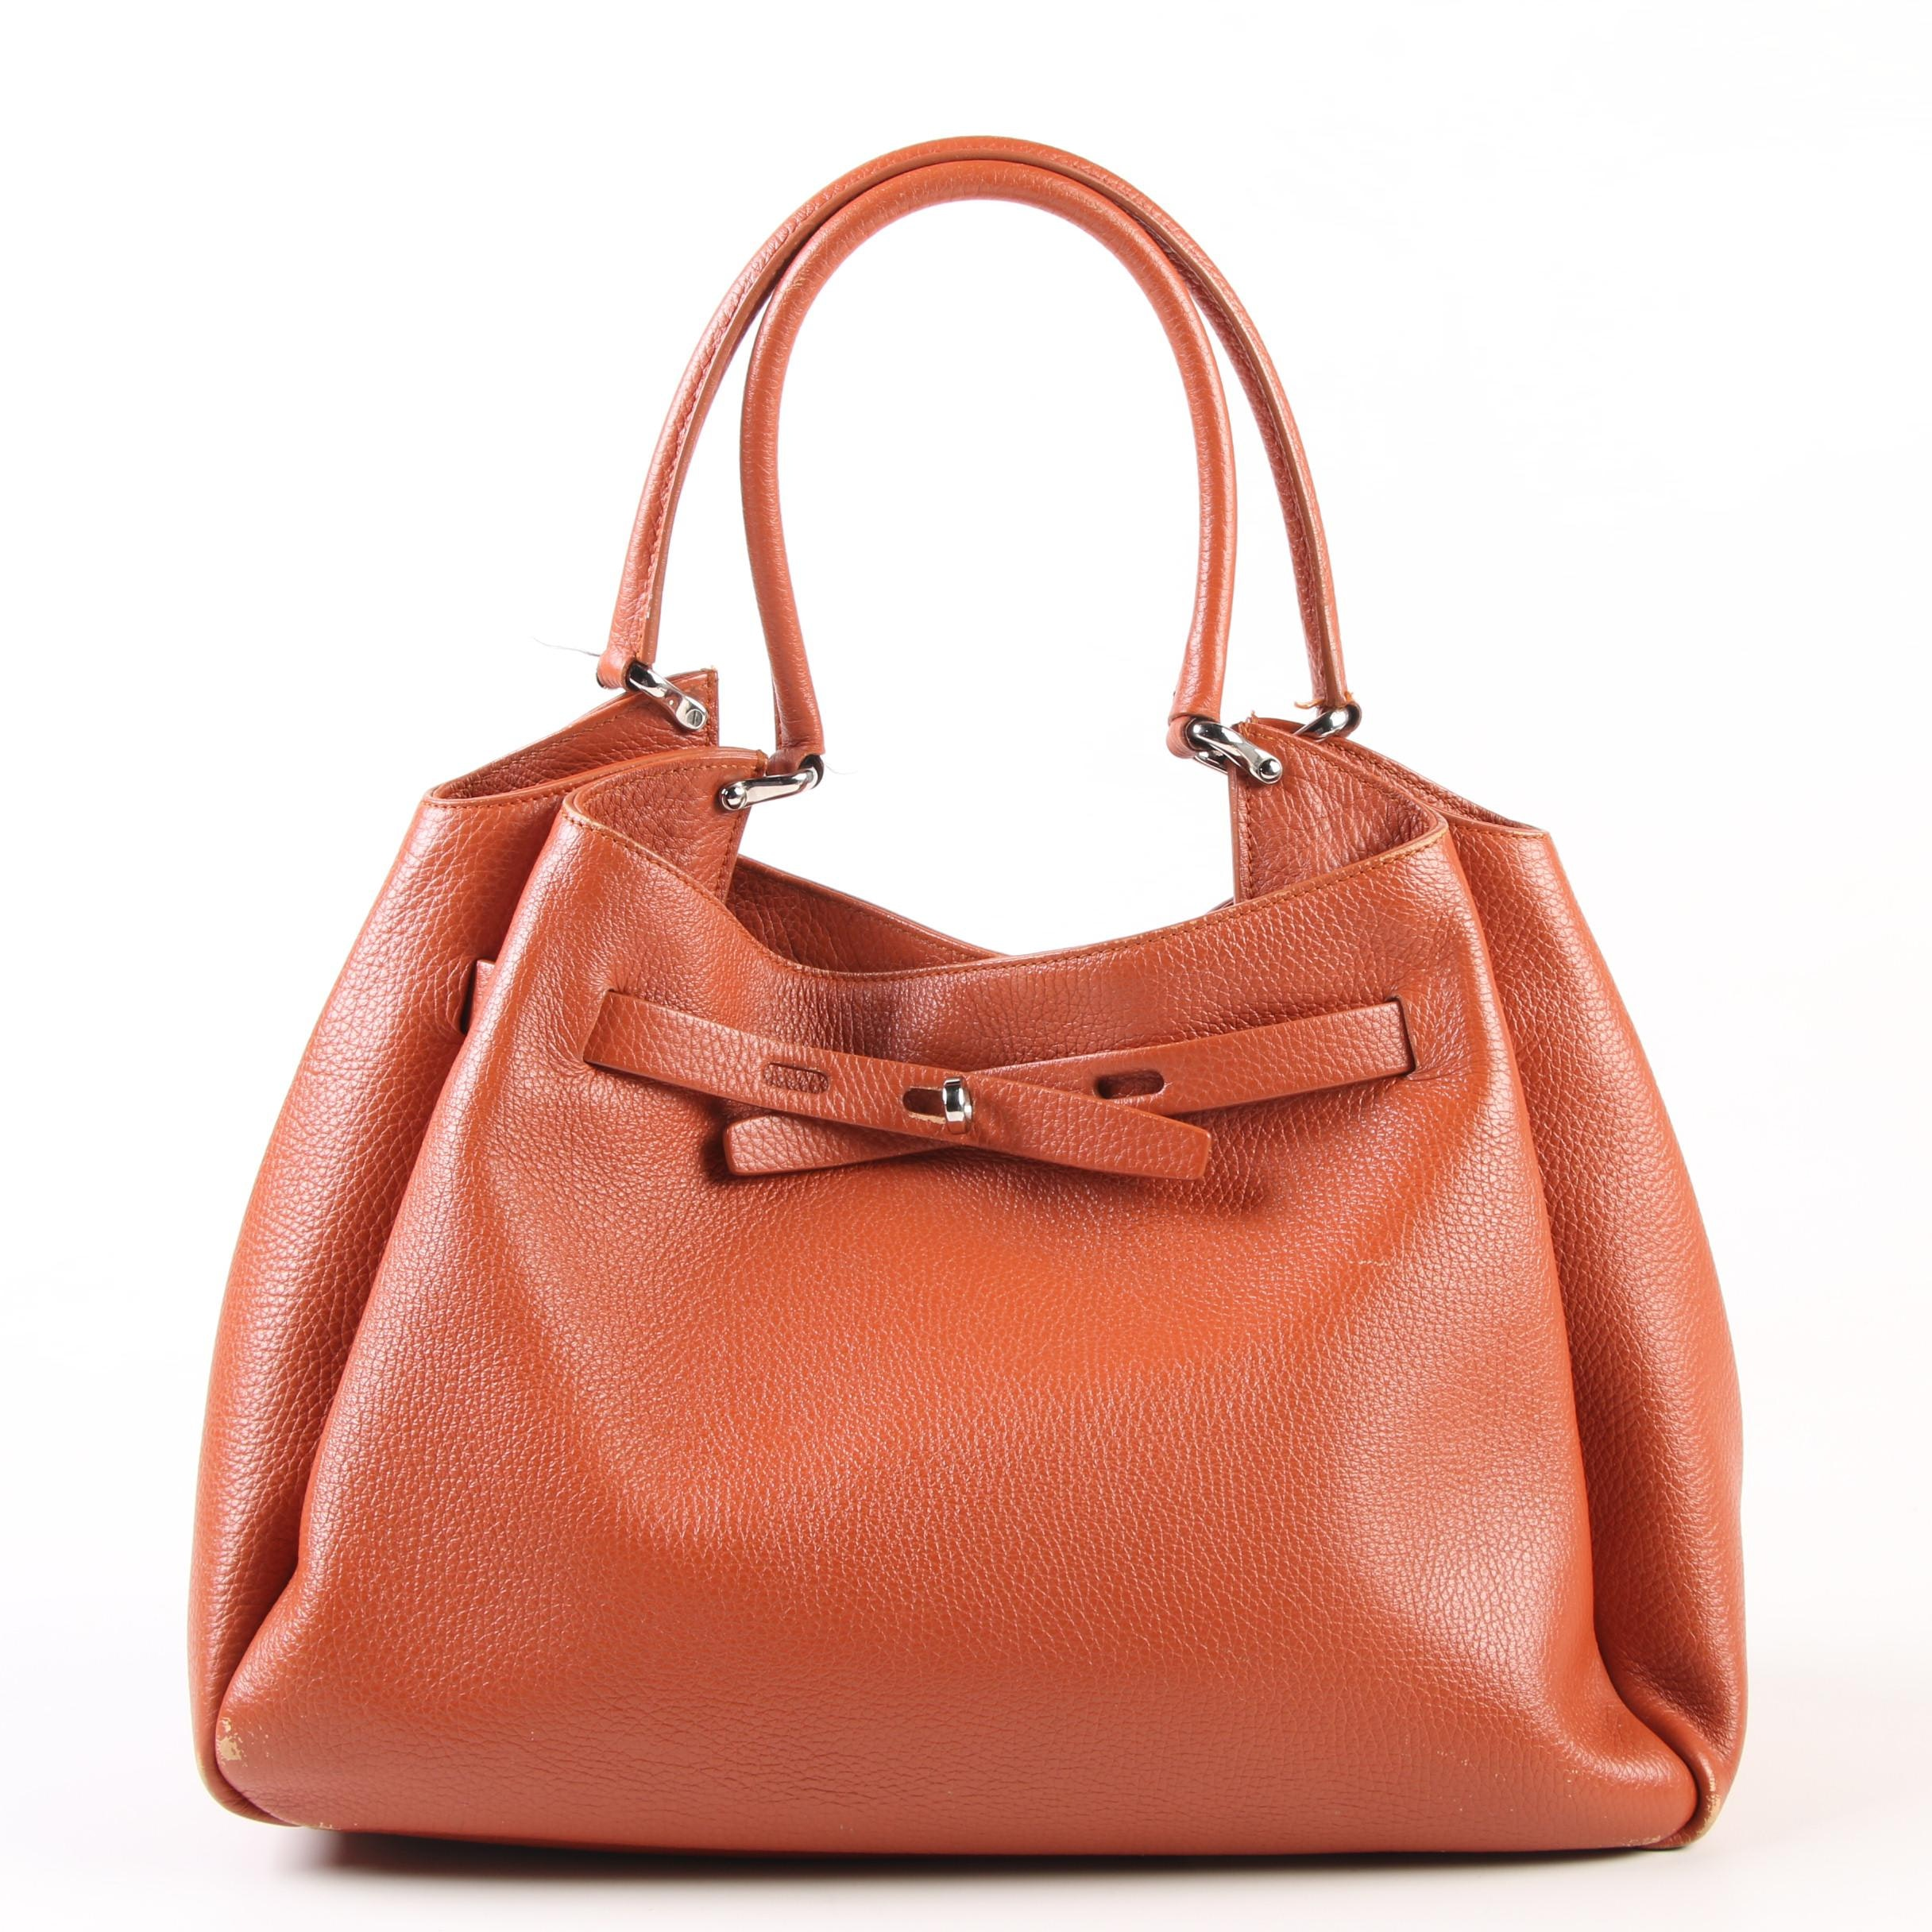 Mauro Governa Shoulder Bag in Pebbled Leather with Turnlock Drawstring